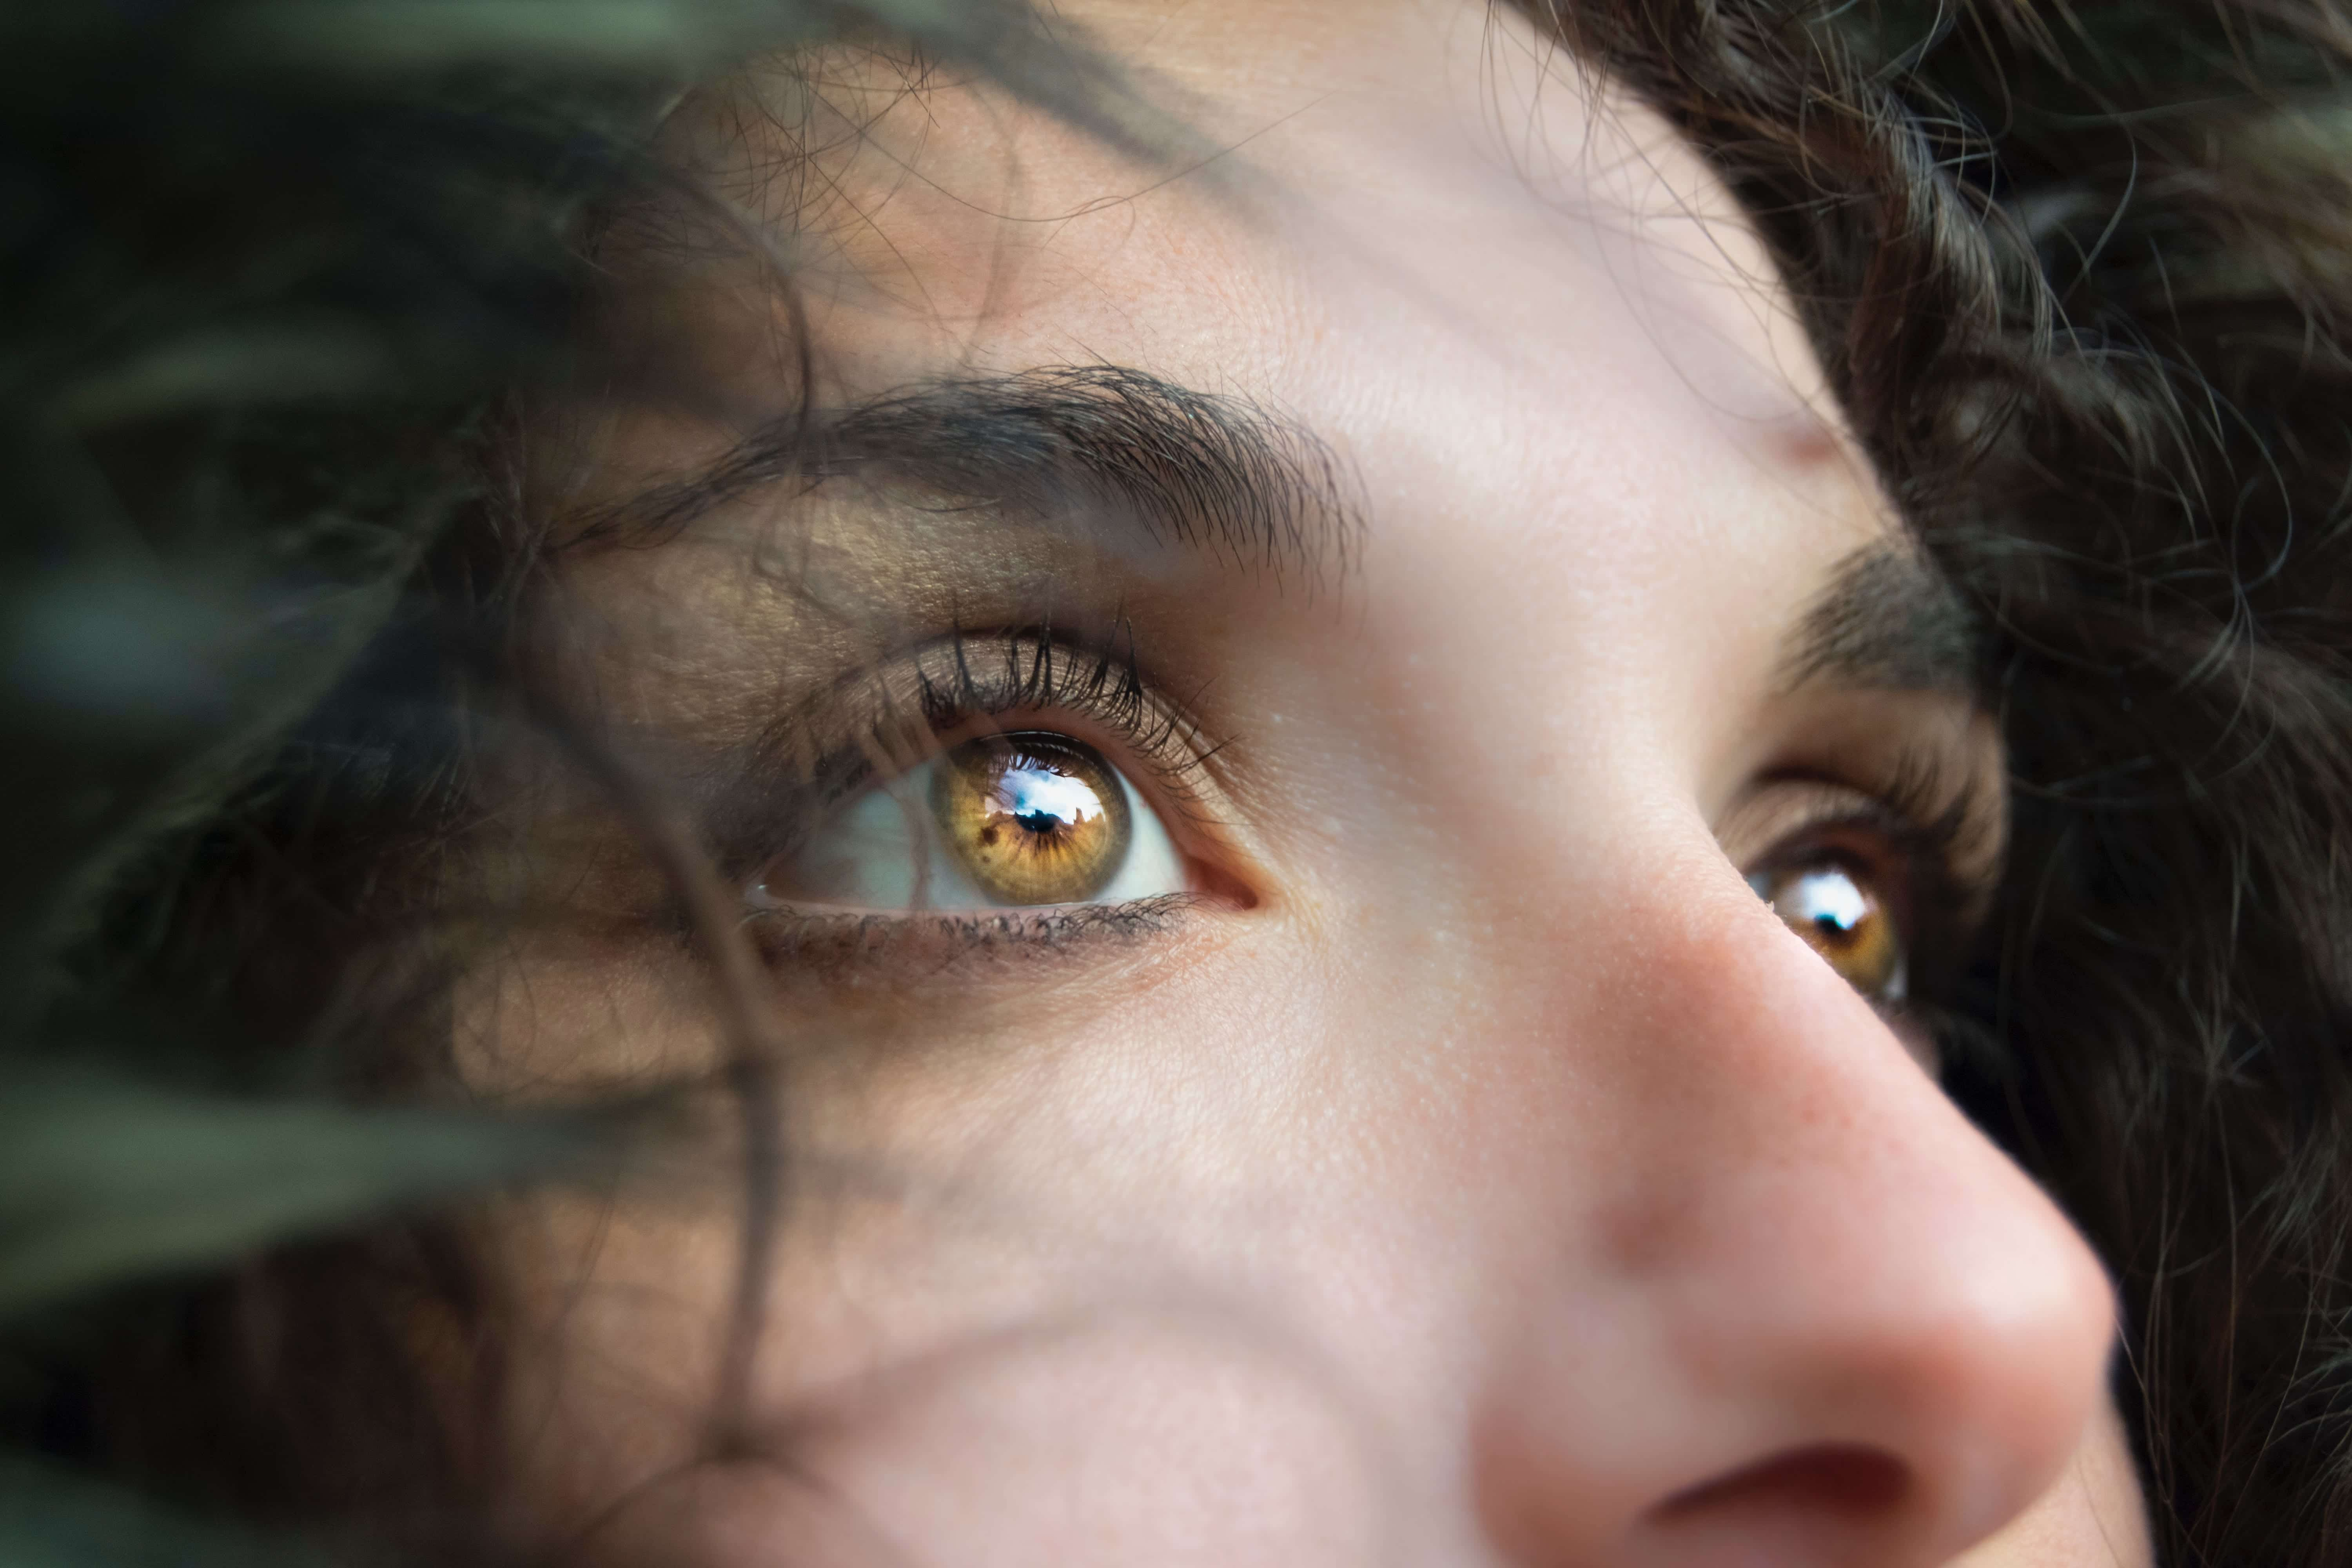 Woman's face, highlighting nose and eyes; image by Marina Vitale, via Unsplash.com.